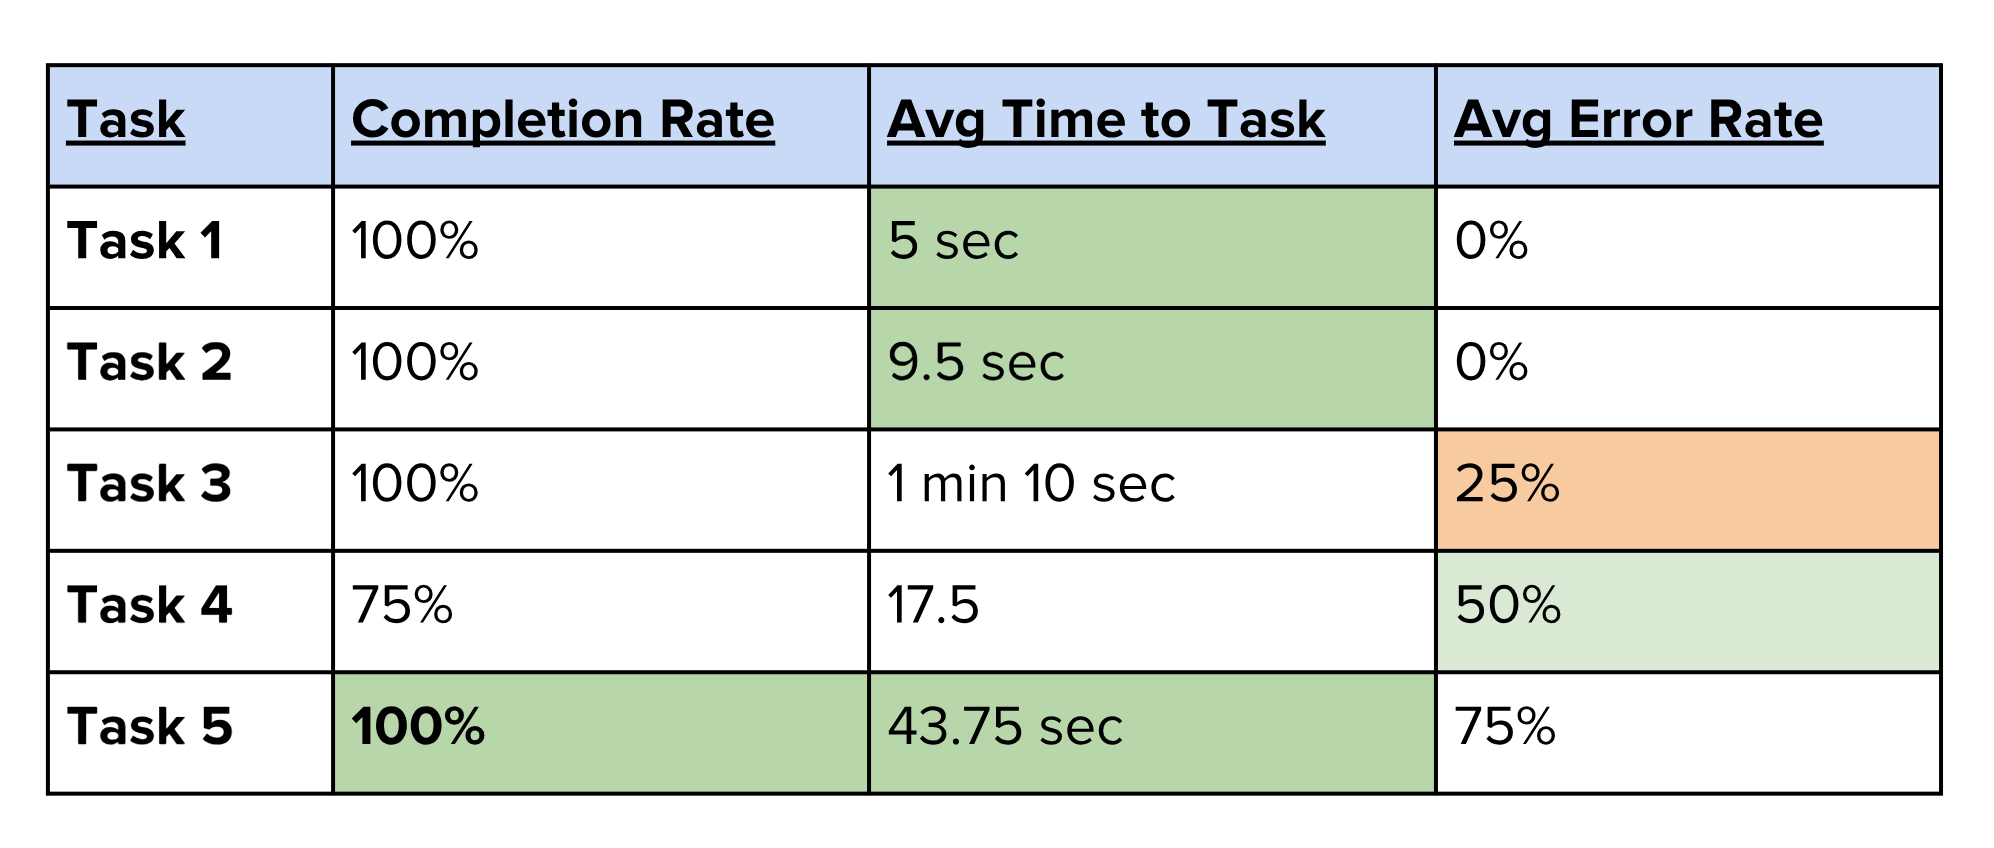 Round 2 of Usability Testing resulted in decreased time to task on most tasks and higher success rates. However, the error rate was still higher than expected.